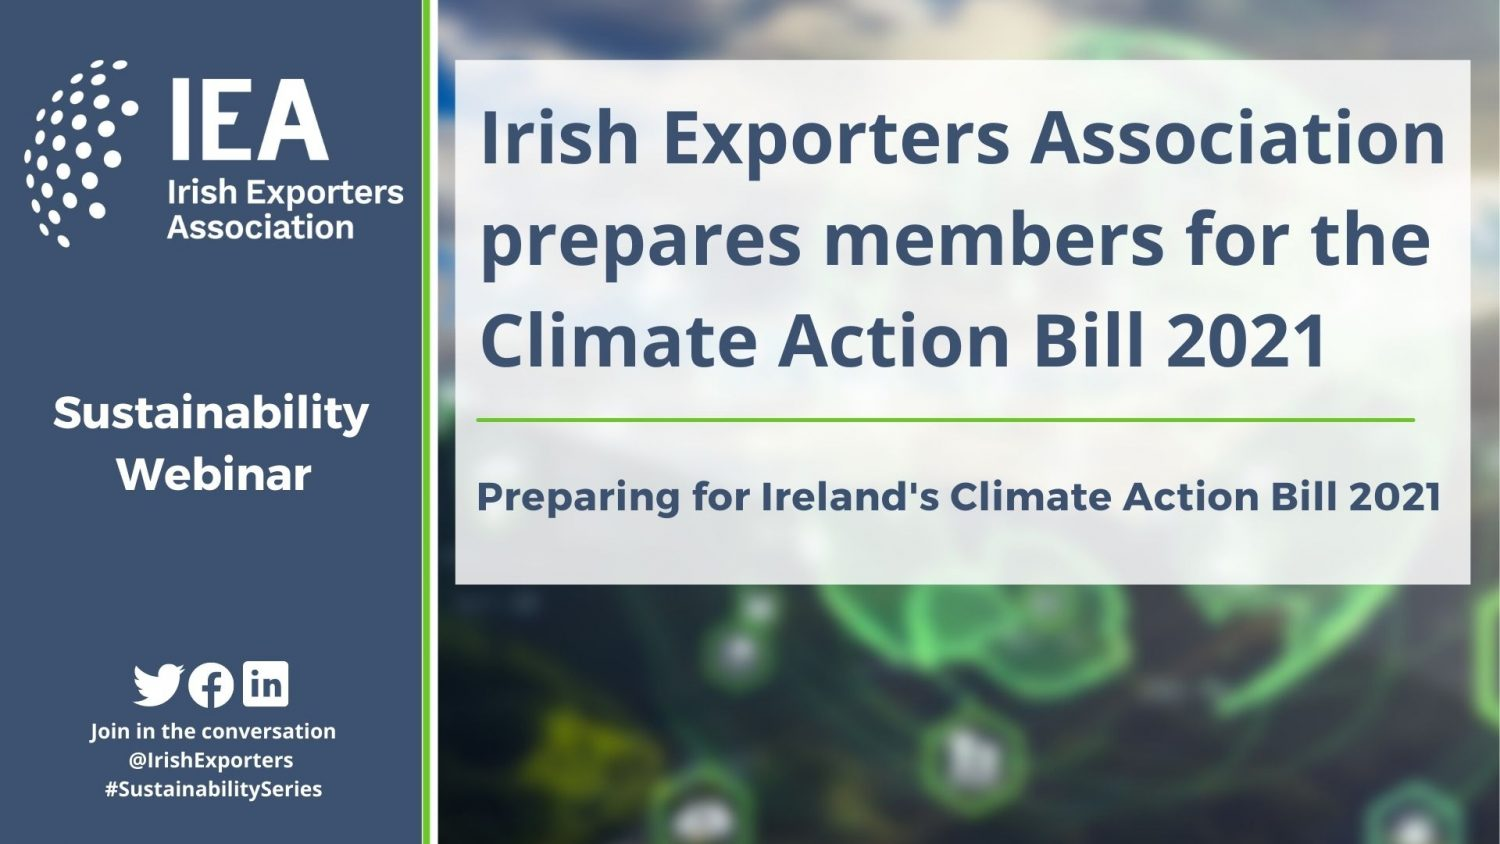 Irish Exporters Association prepares members for the Climate Action Bill 2021